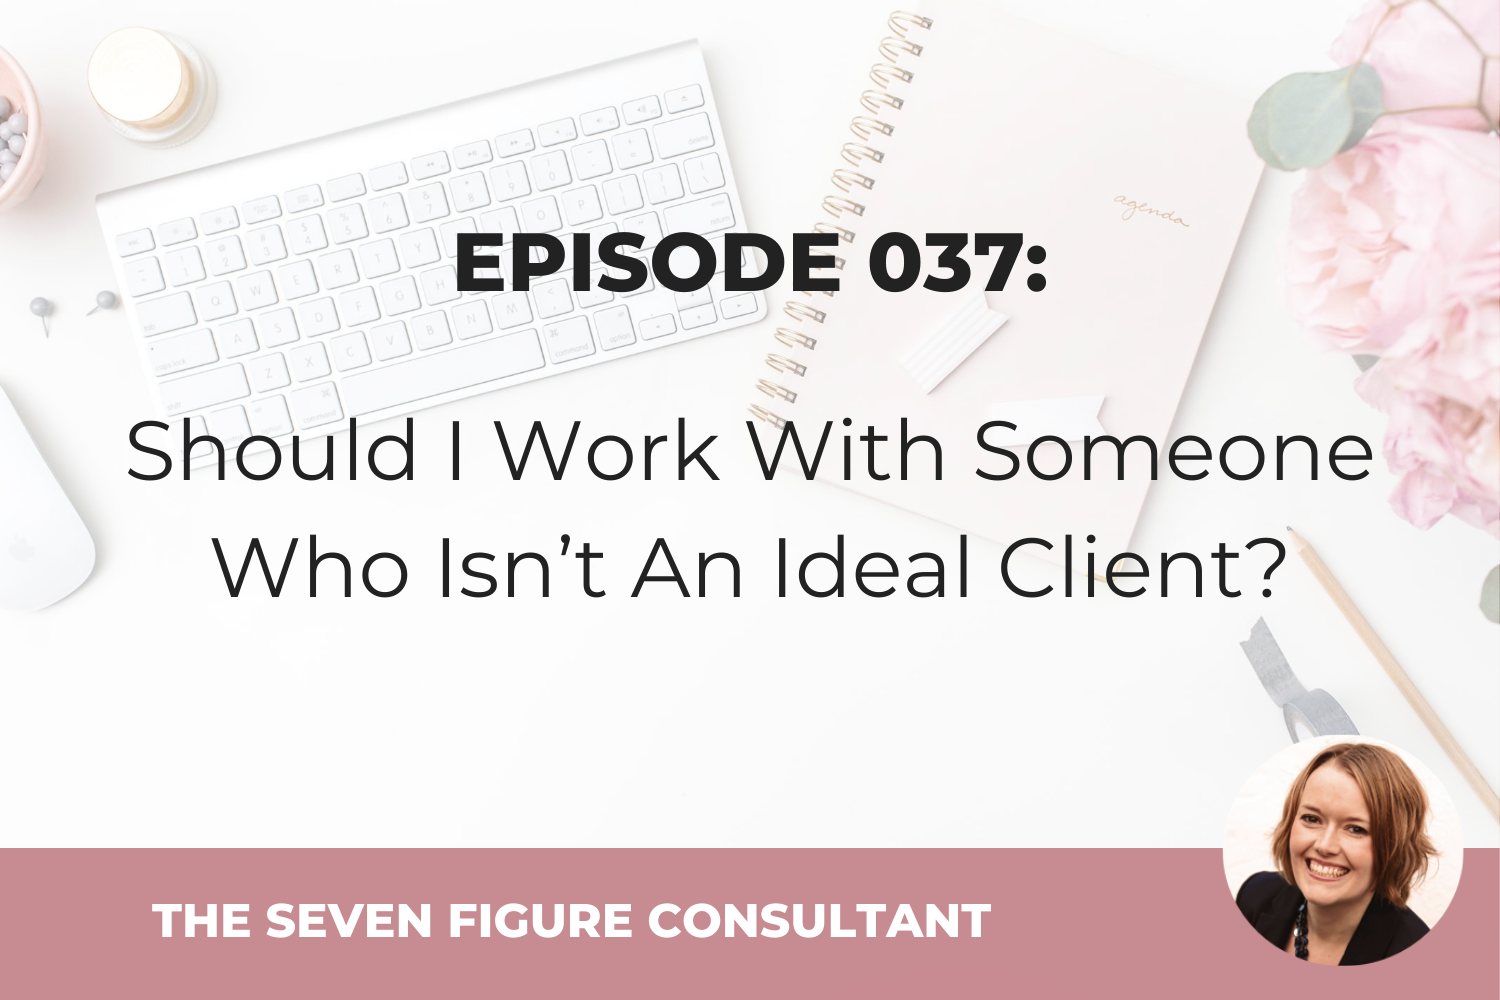 Episode 037: Should I Work With Someone Who Isn't An Ideal Client?